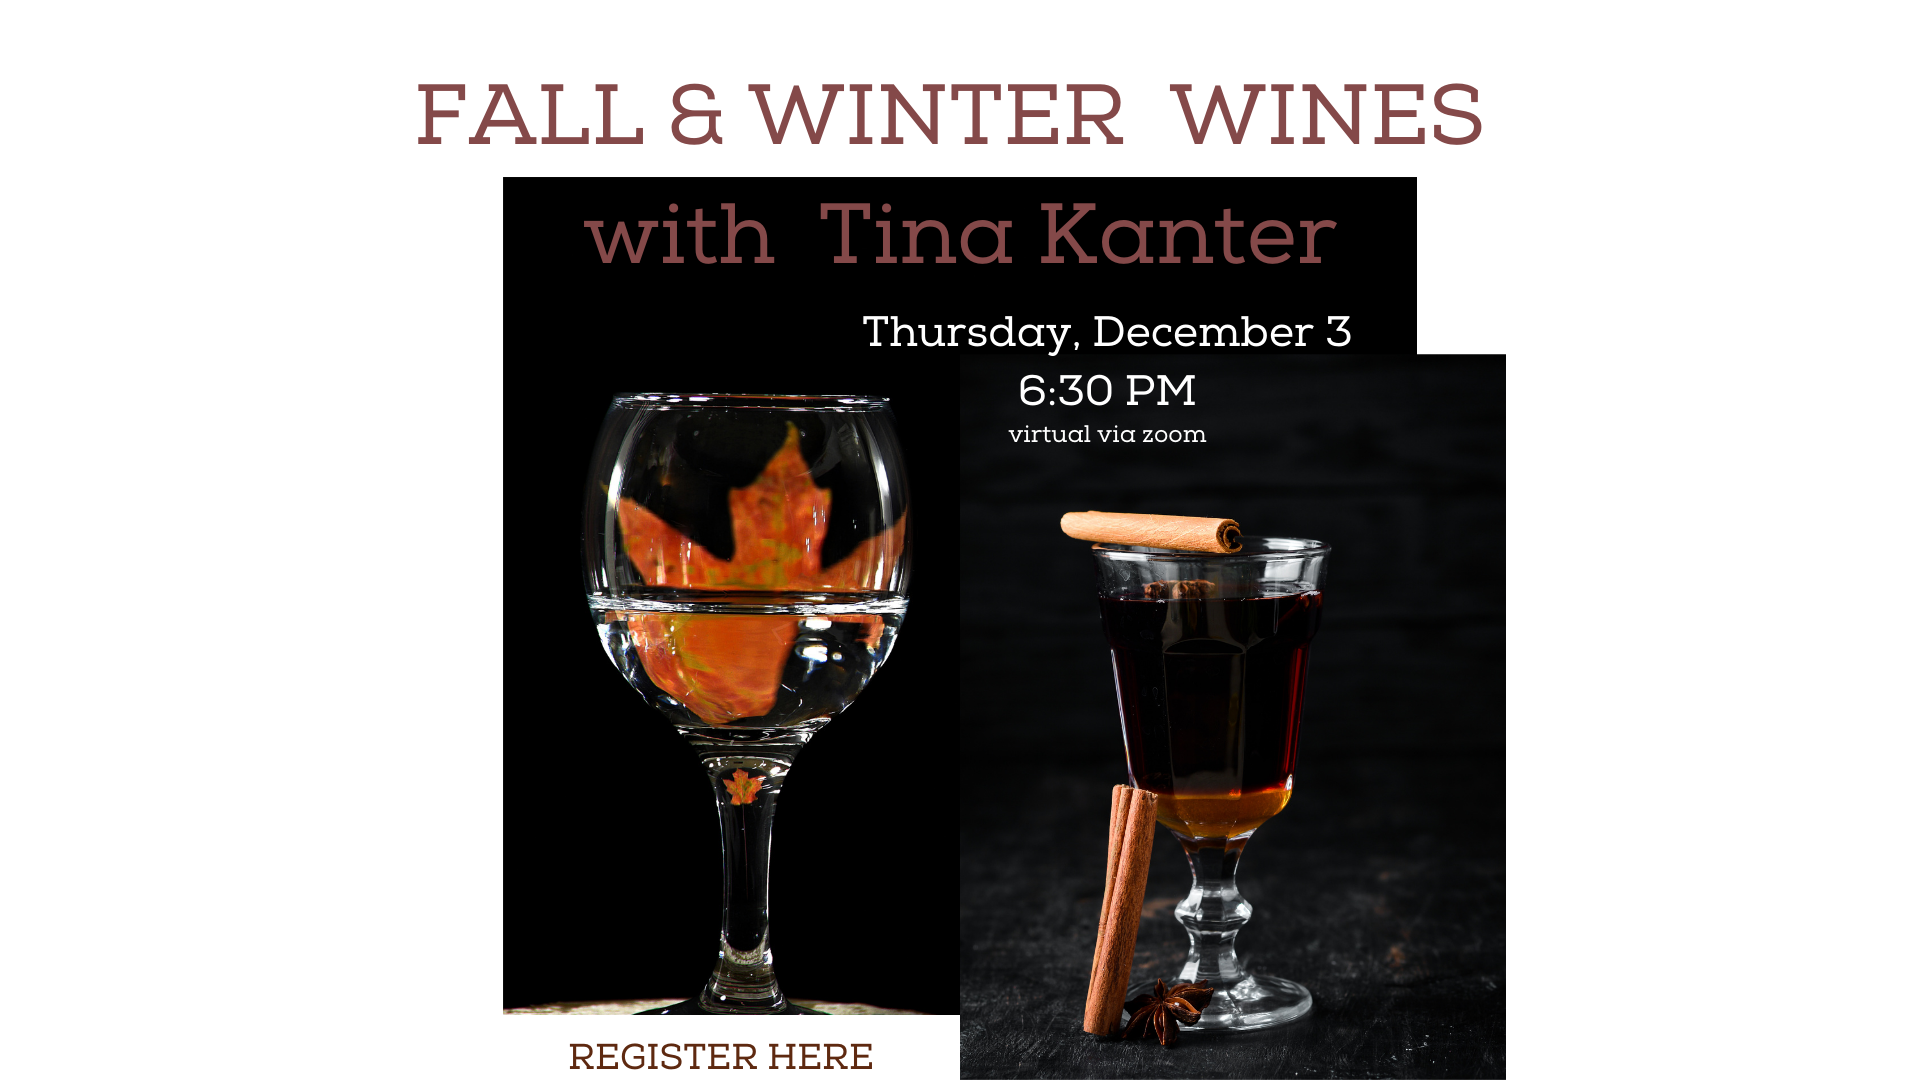 CAROUSEL Fall & Winter Wines with Tina Kanter 12.3.20.png